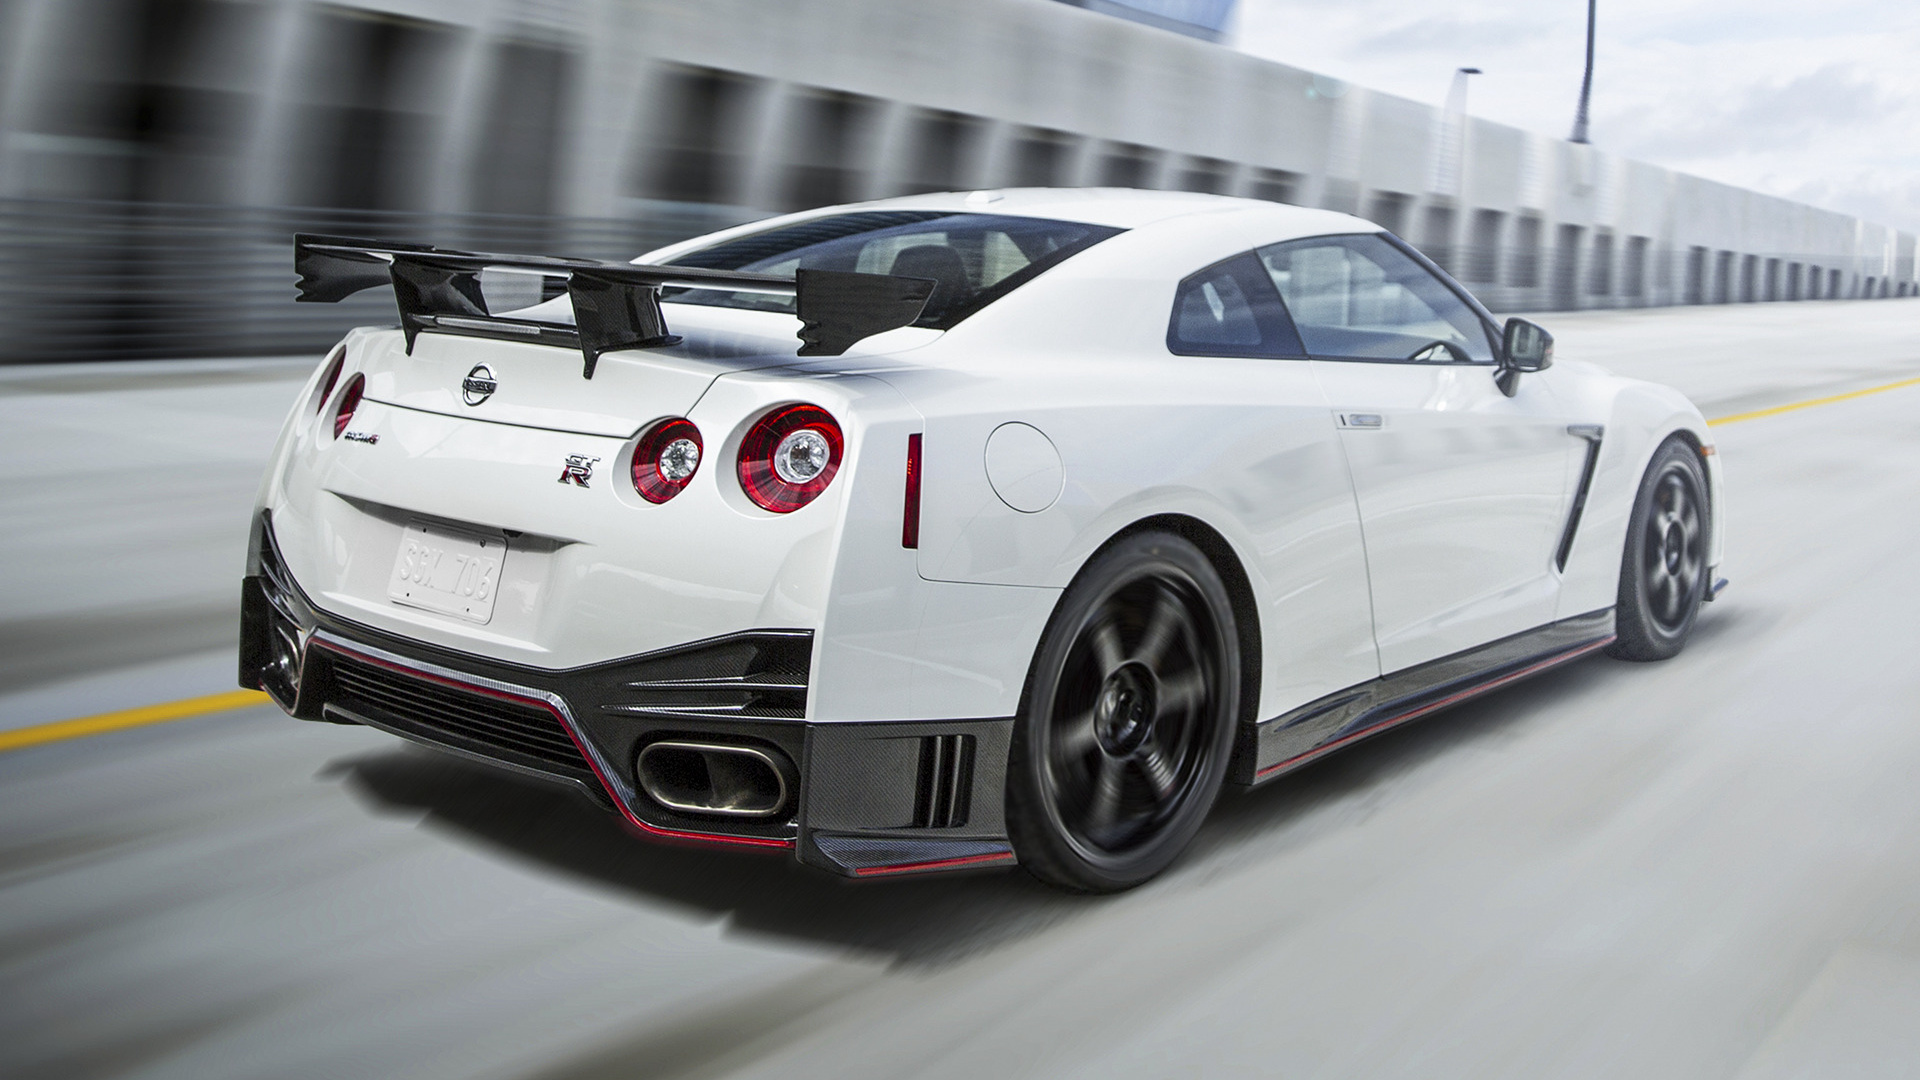 2017 Nissan Gt R Nismo Wallpapers Hd Images: Nissan GT-R Nismo (2015) US Wallpapers And HD Images